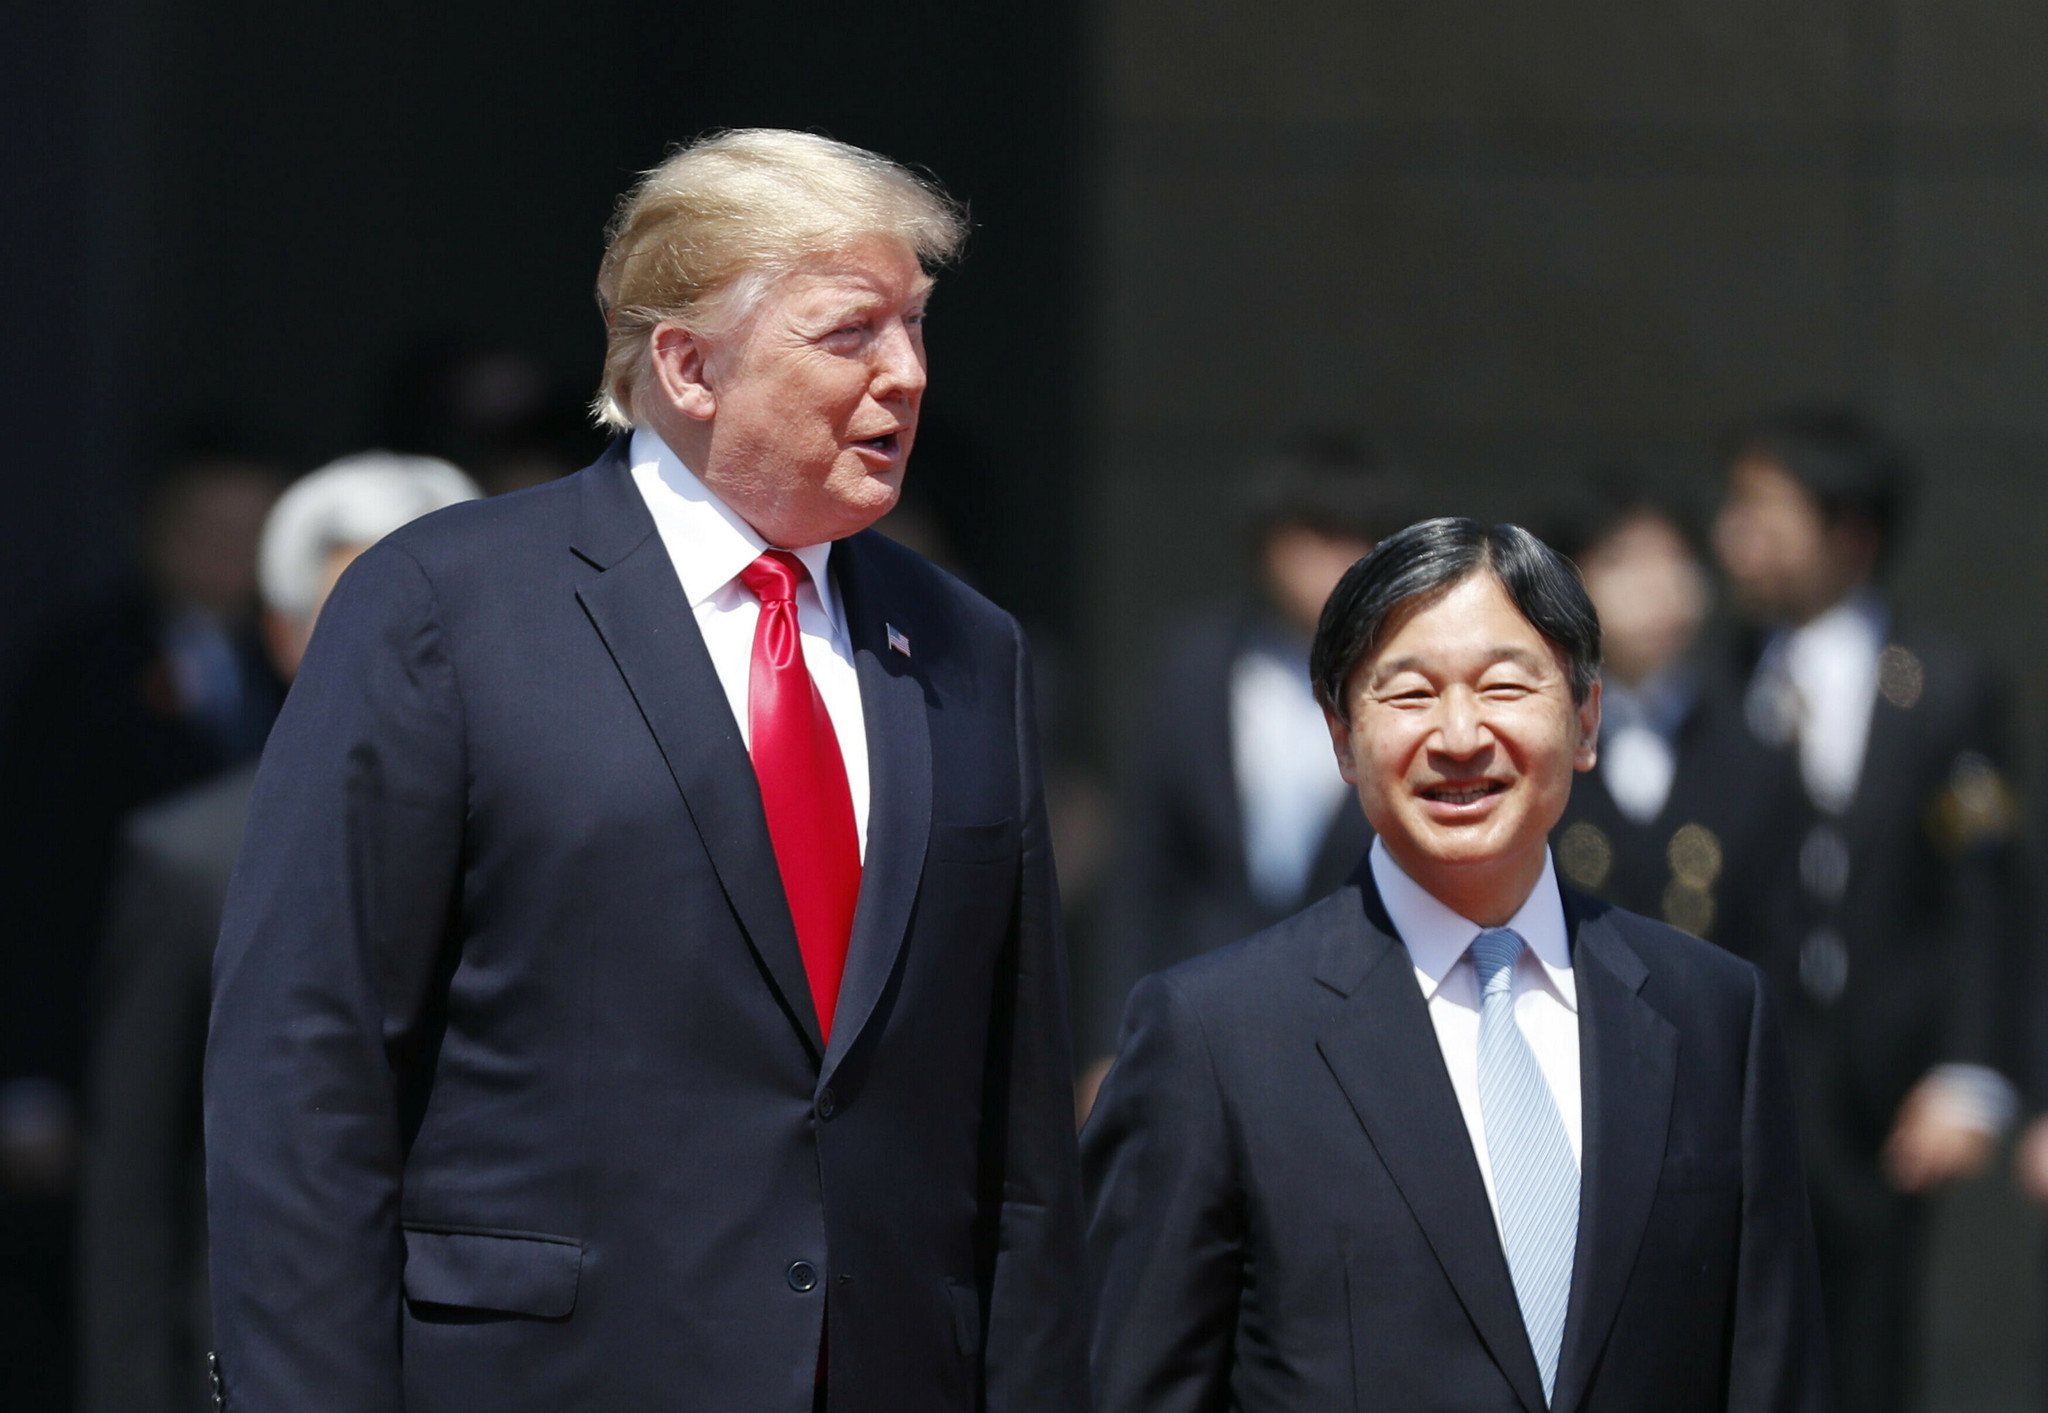 Trump becomes first world leader to meet new emperor of Japan